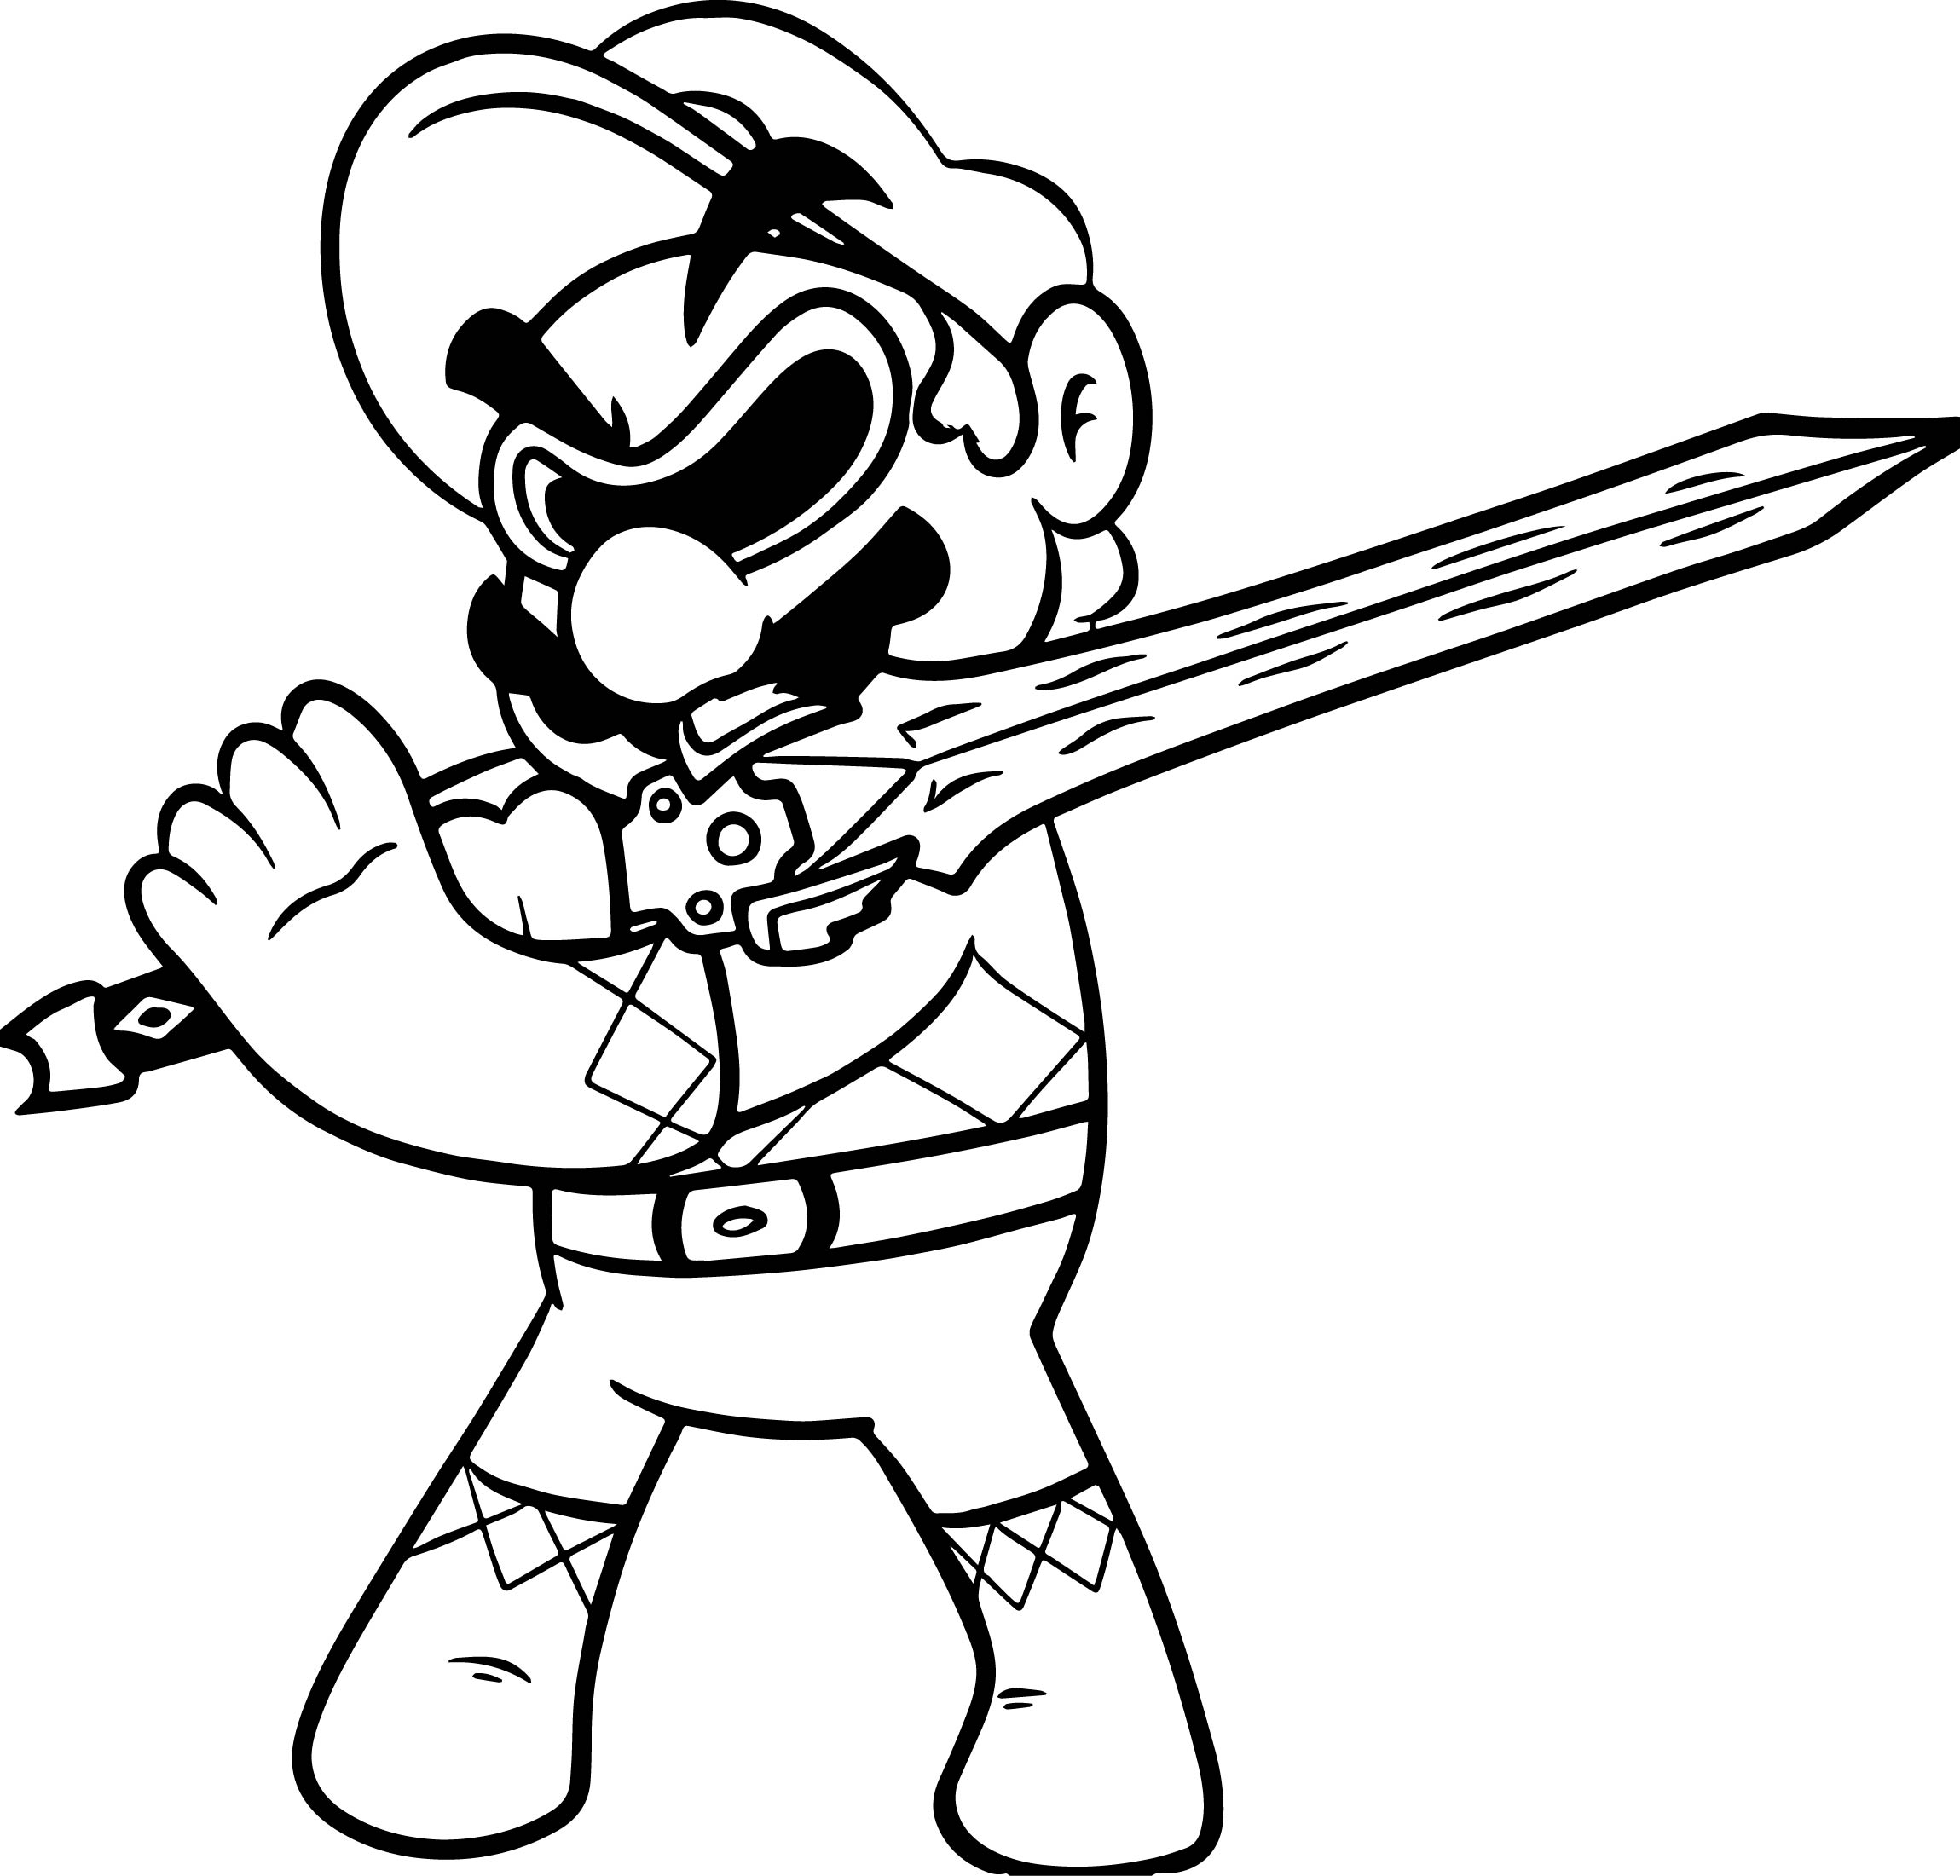 Power Ranger Super Mario Coloring Page